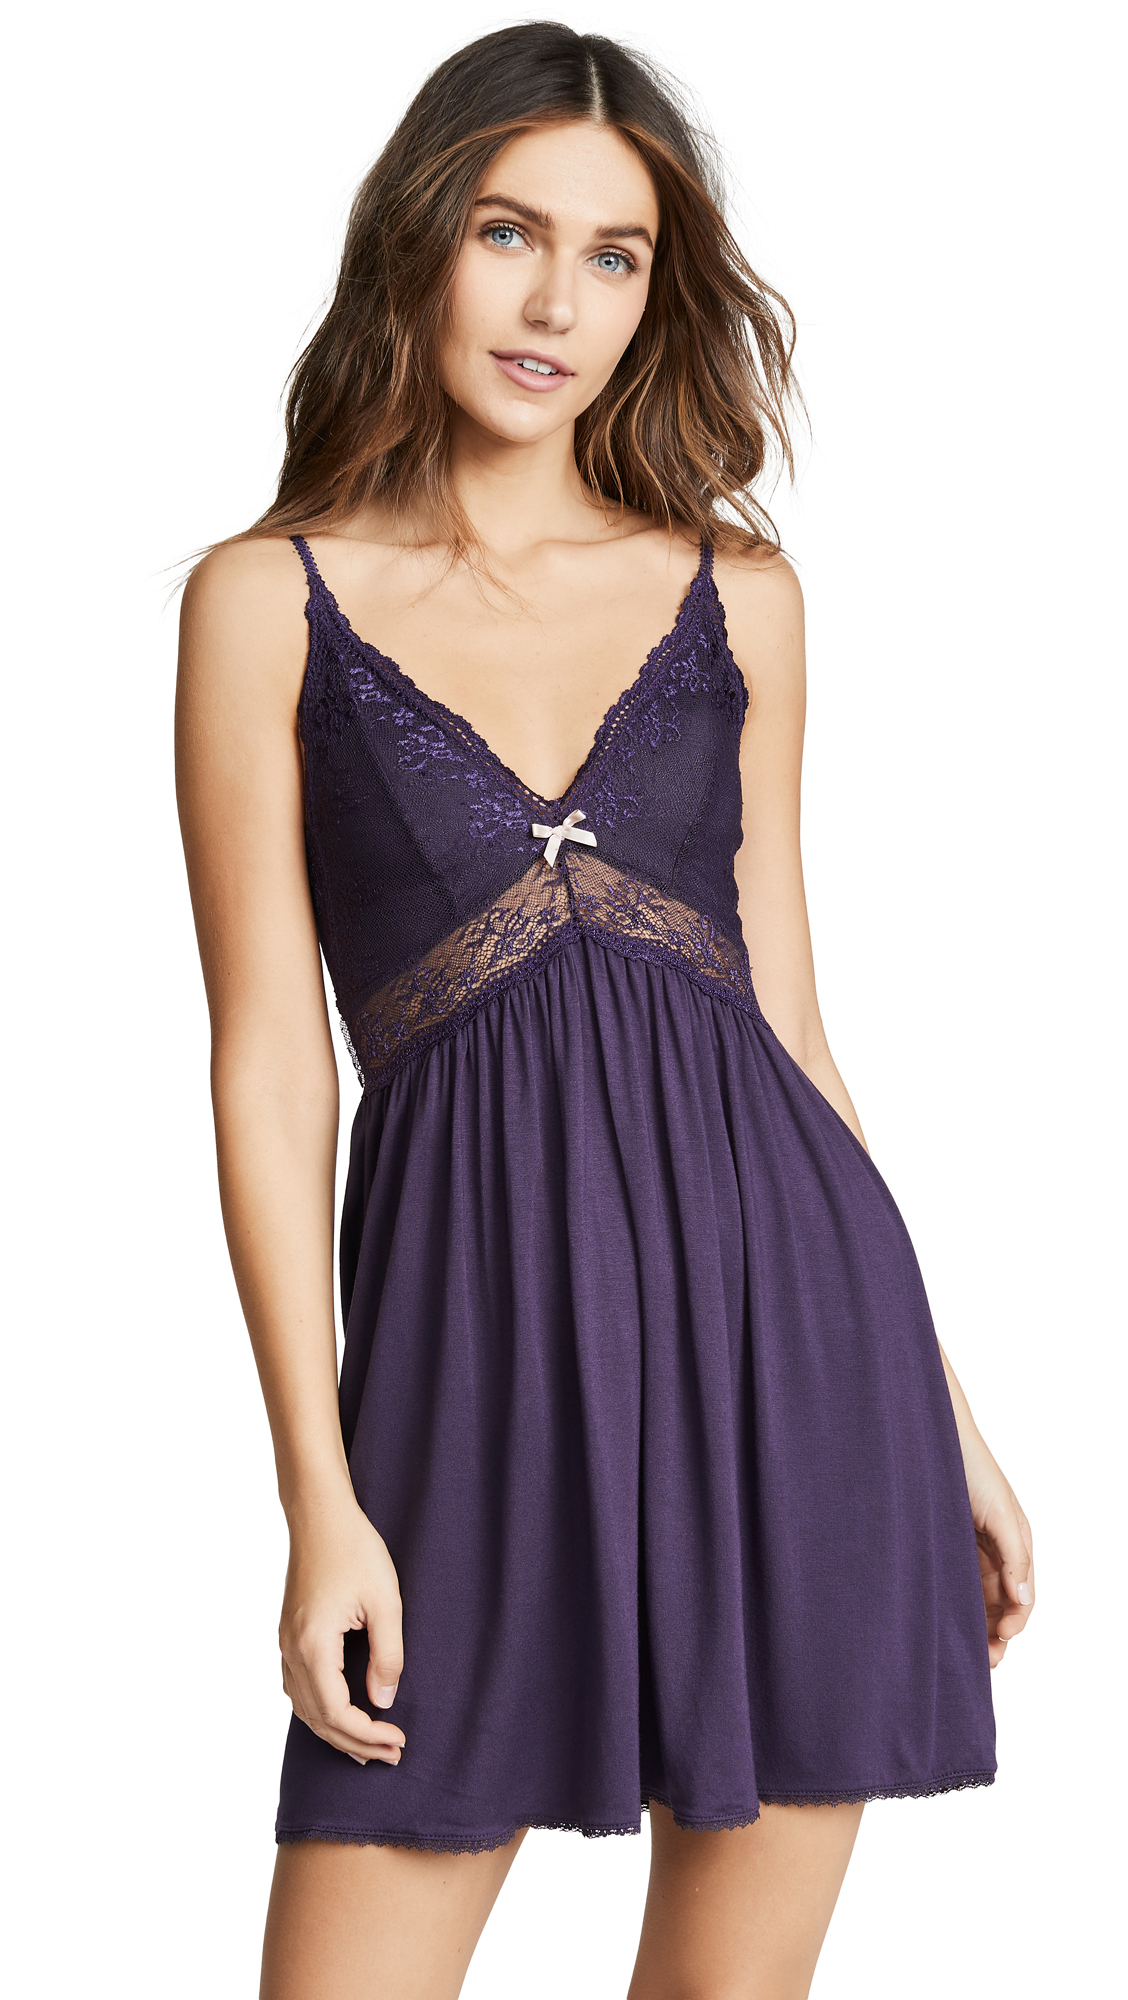 Colette The Mademoiselle Jersey Chemise in Mysterioso